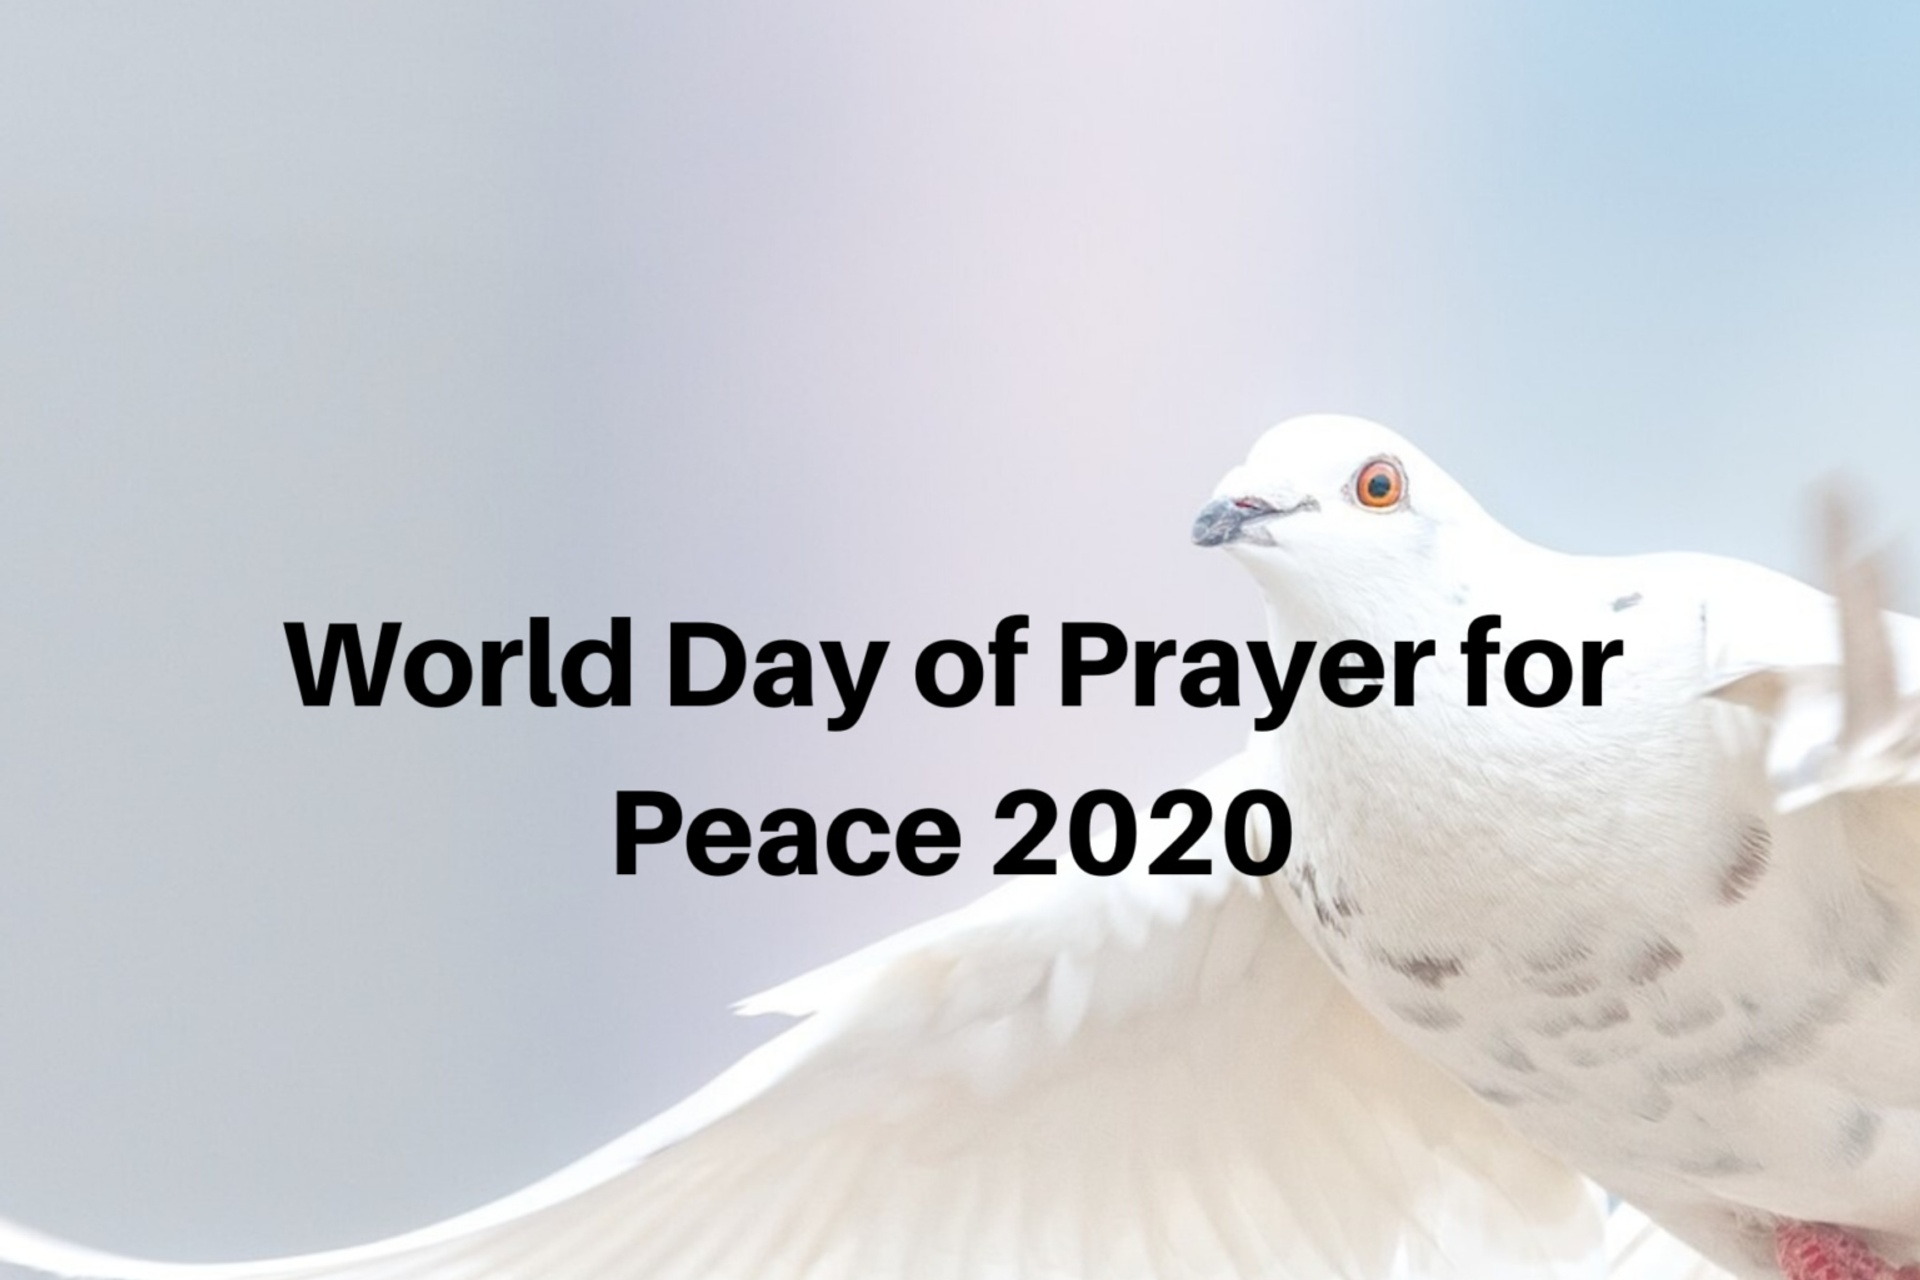 World Day of Prayer for Peace 2020